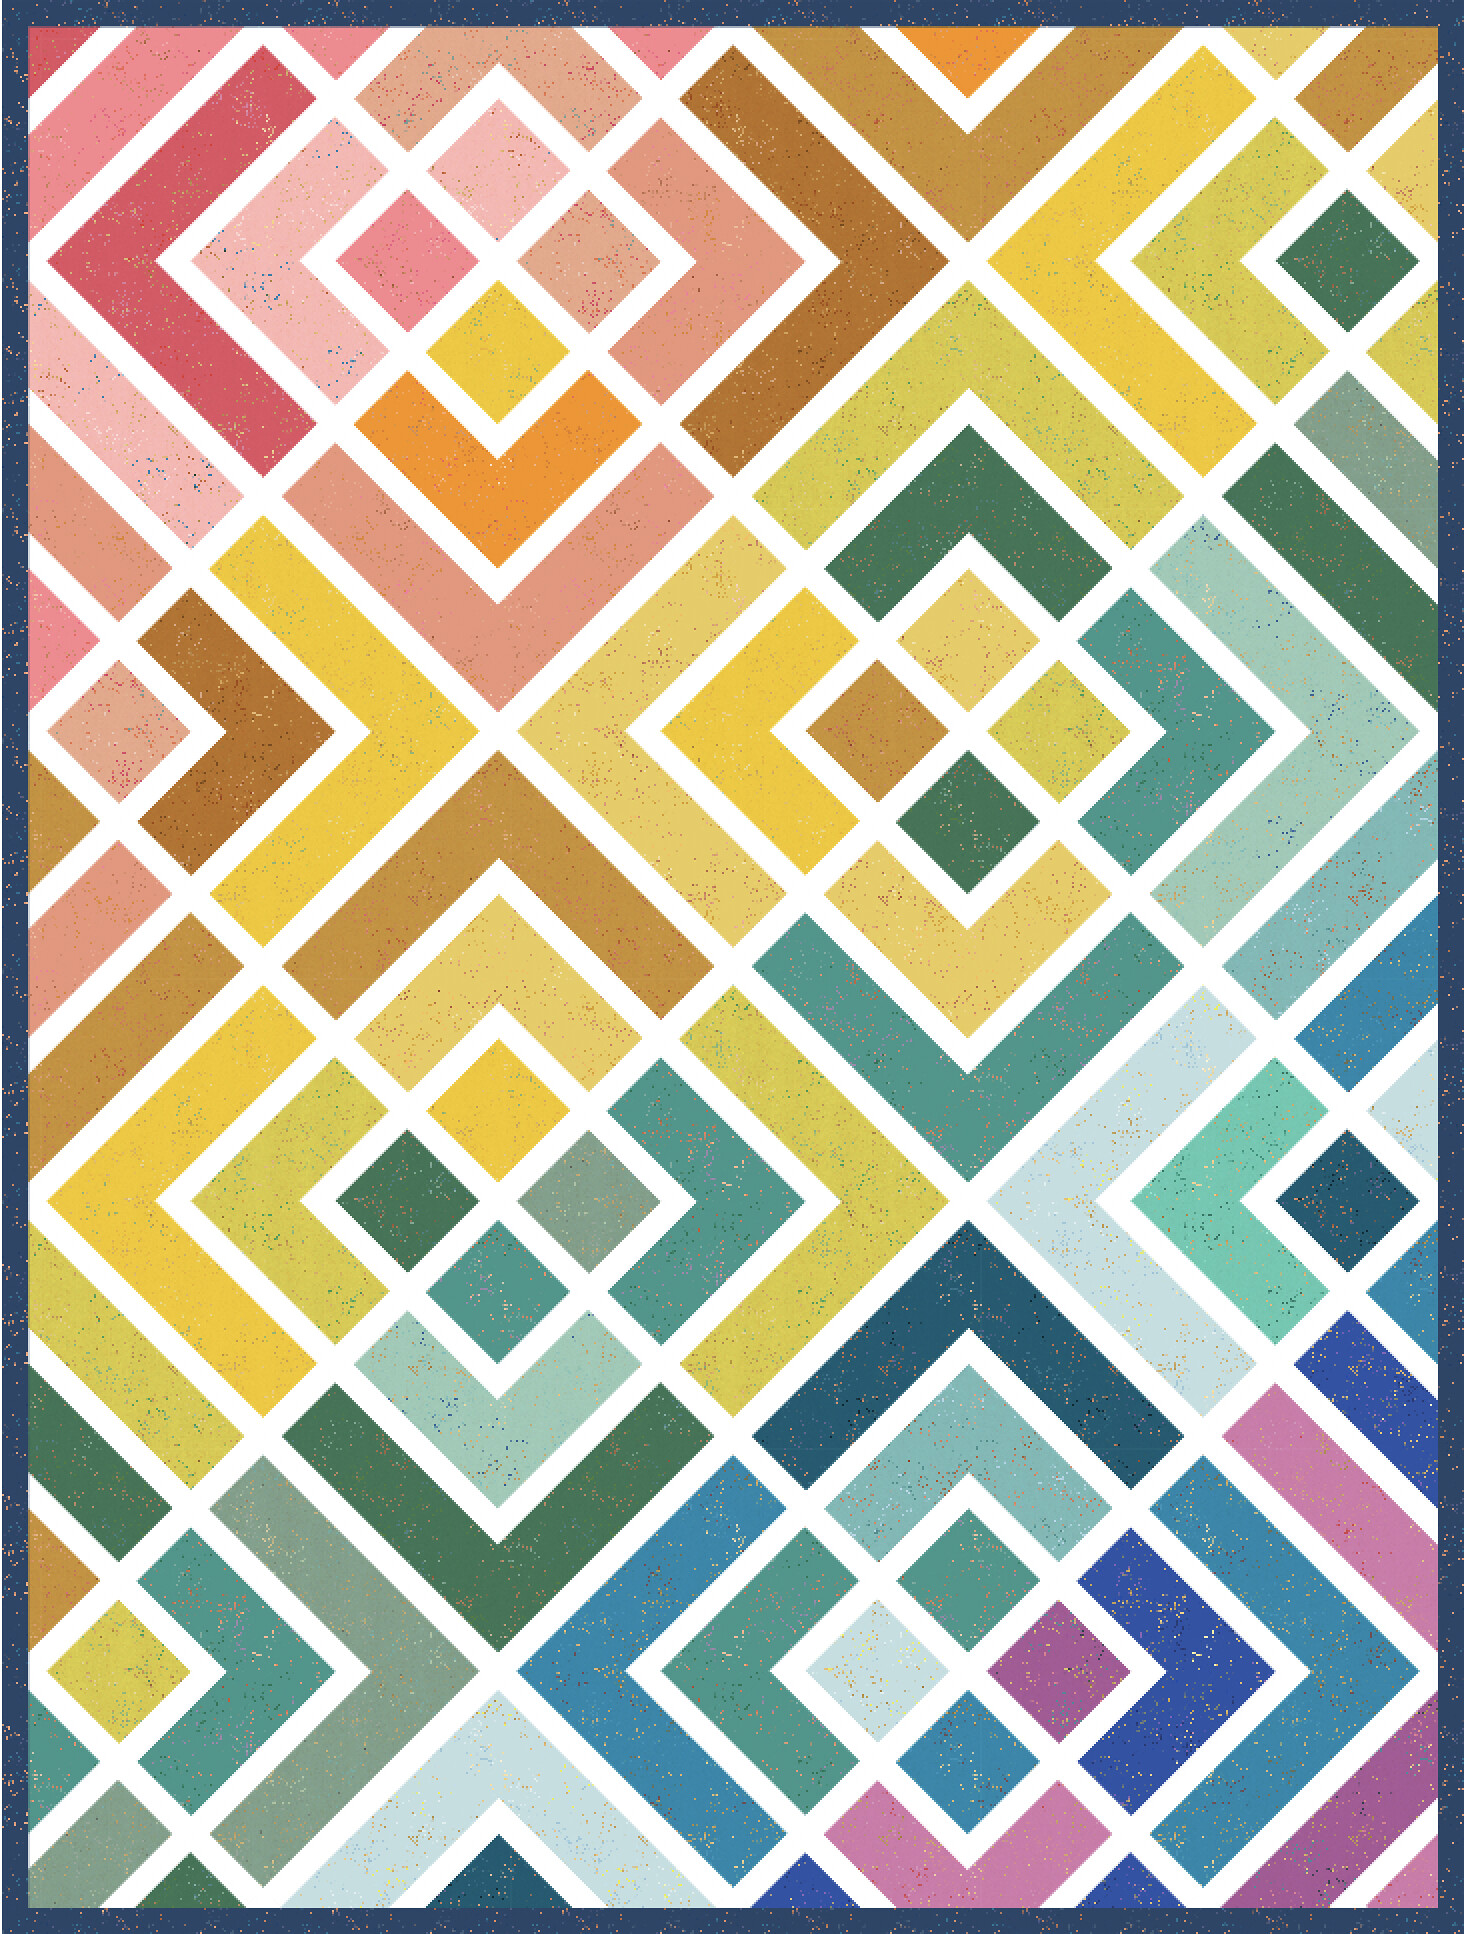 The Penny Quilt Rainbow Version - Kitchen Table Quilting